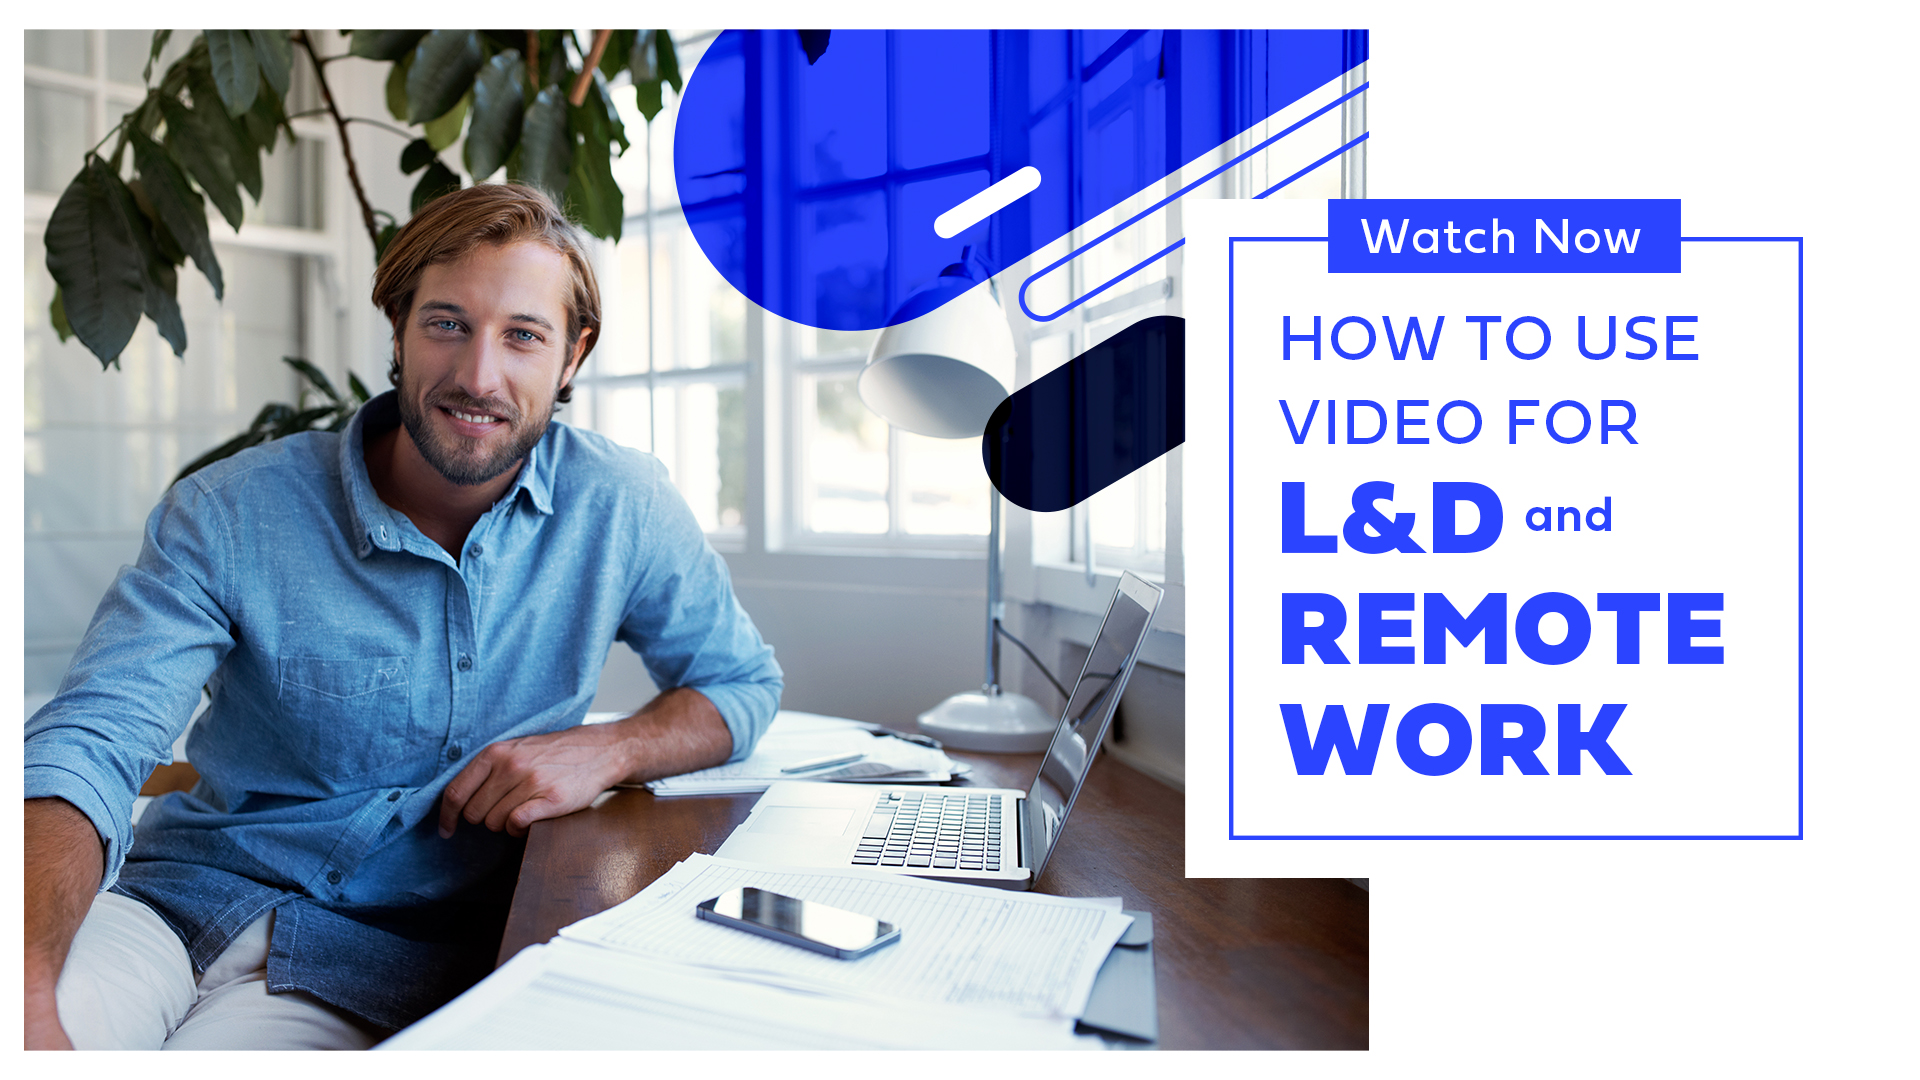 on demand video - how to use video for l&d and remote work